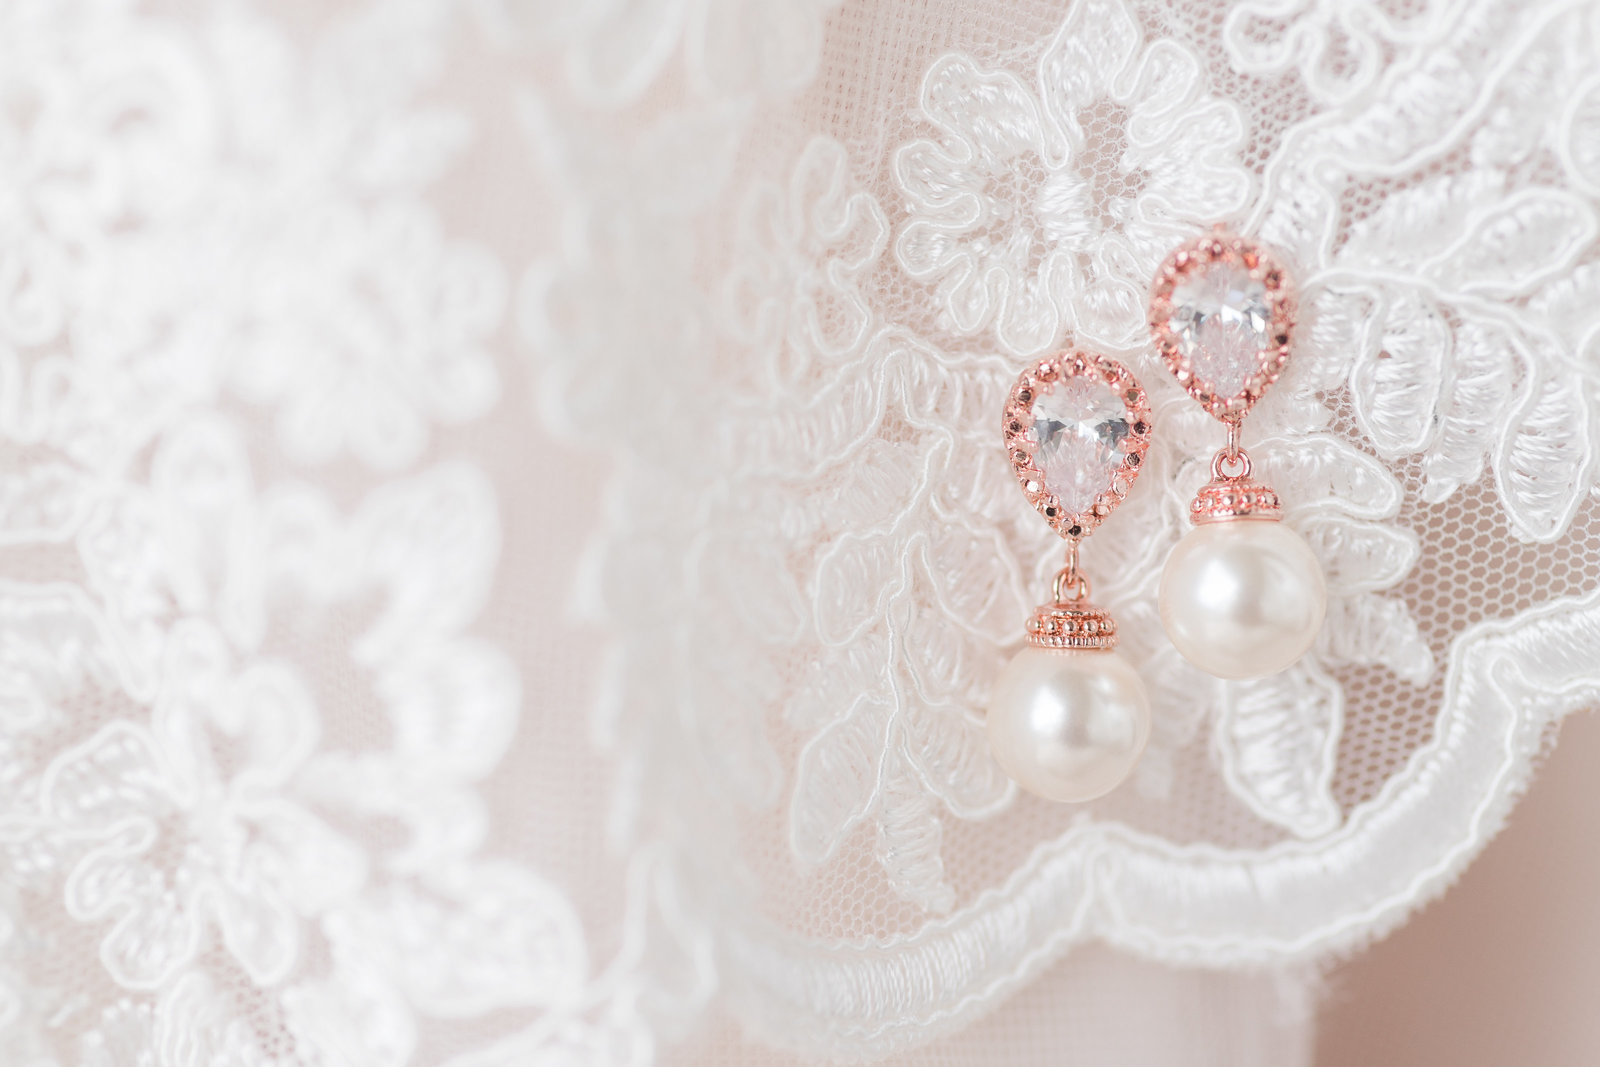 Navy and Blush Hart 2 Hart Vineyard Wedding by Adrienne and Dani Photography